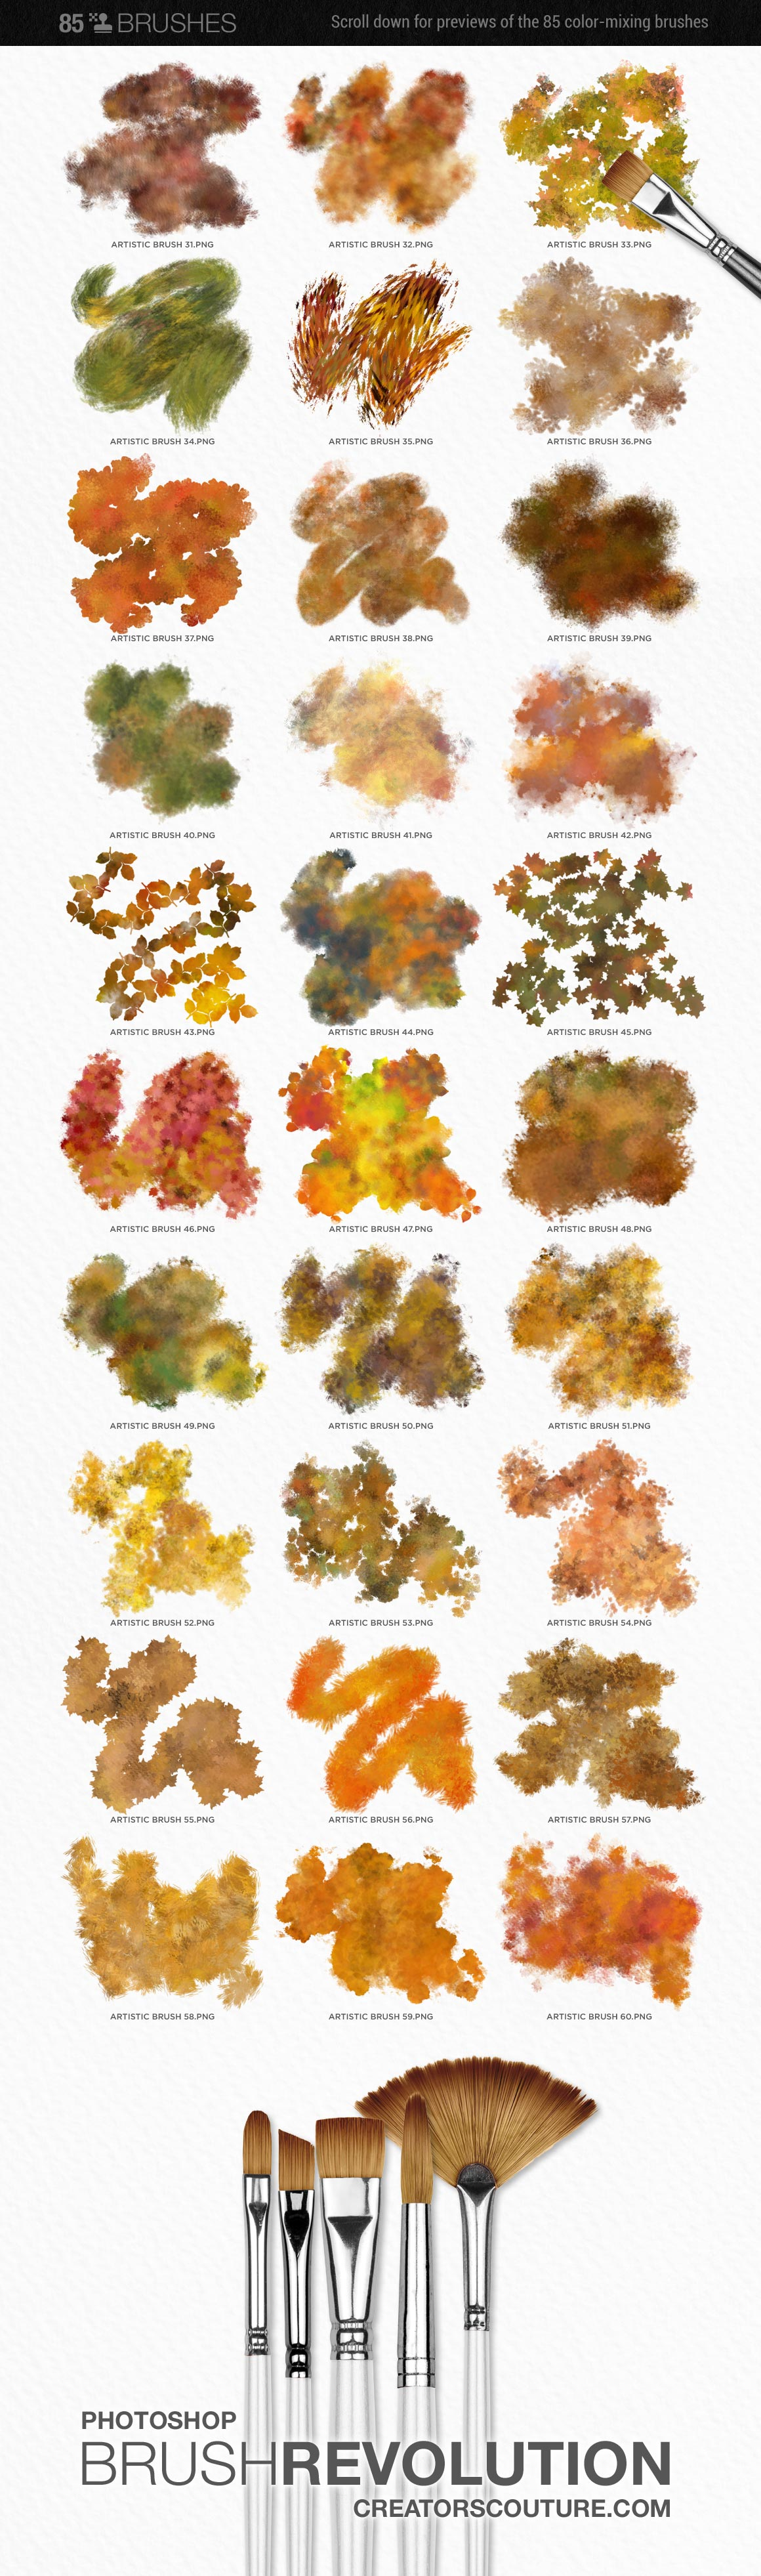 artistic color-blending photoshop brush preview chart 2